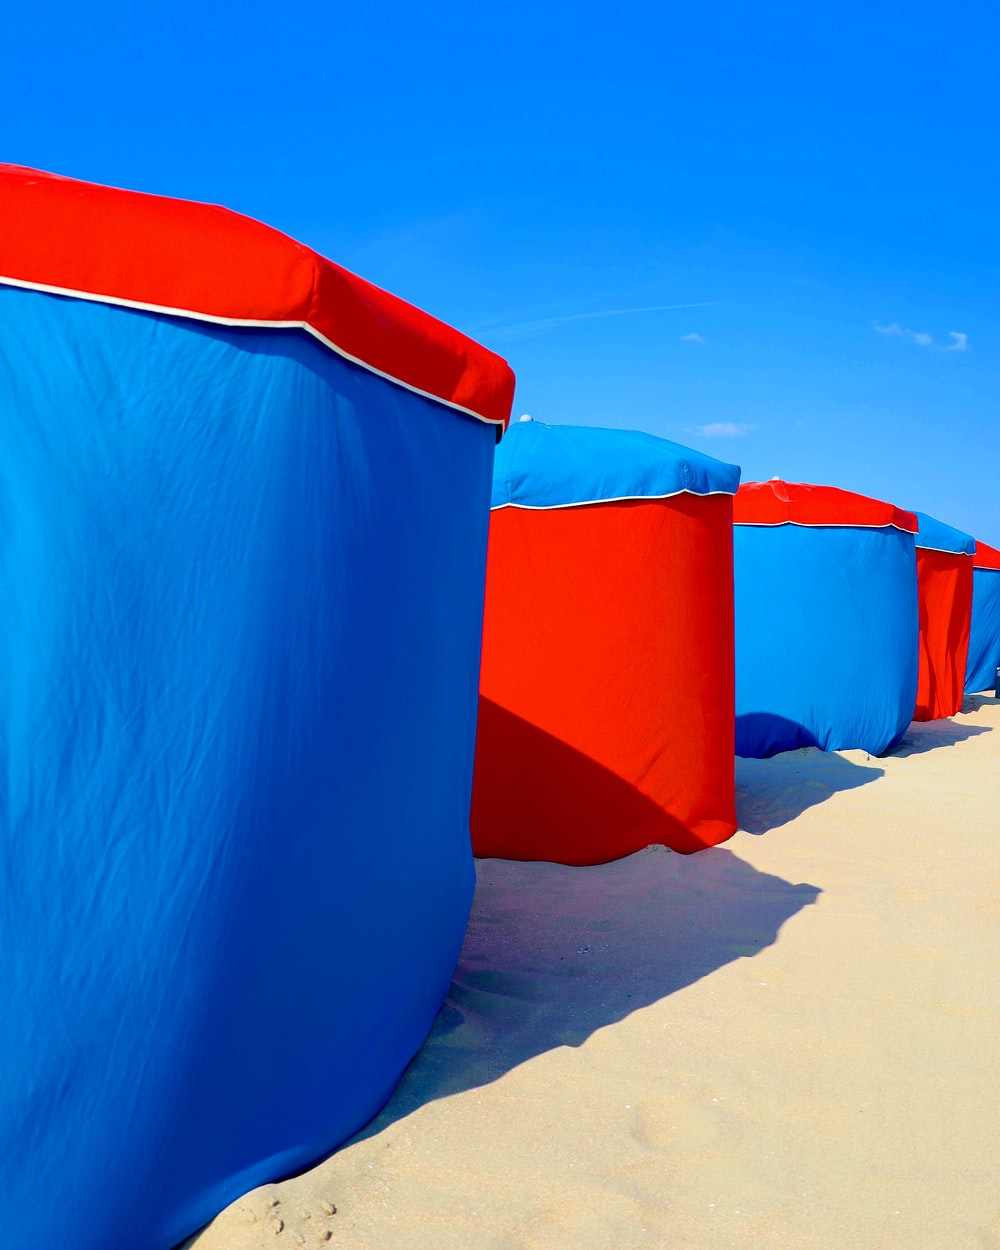 blue and red inflatable tent on brown sand during daytime